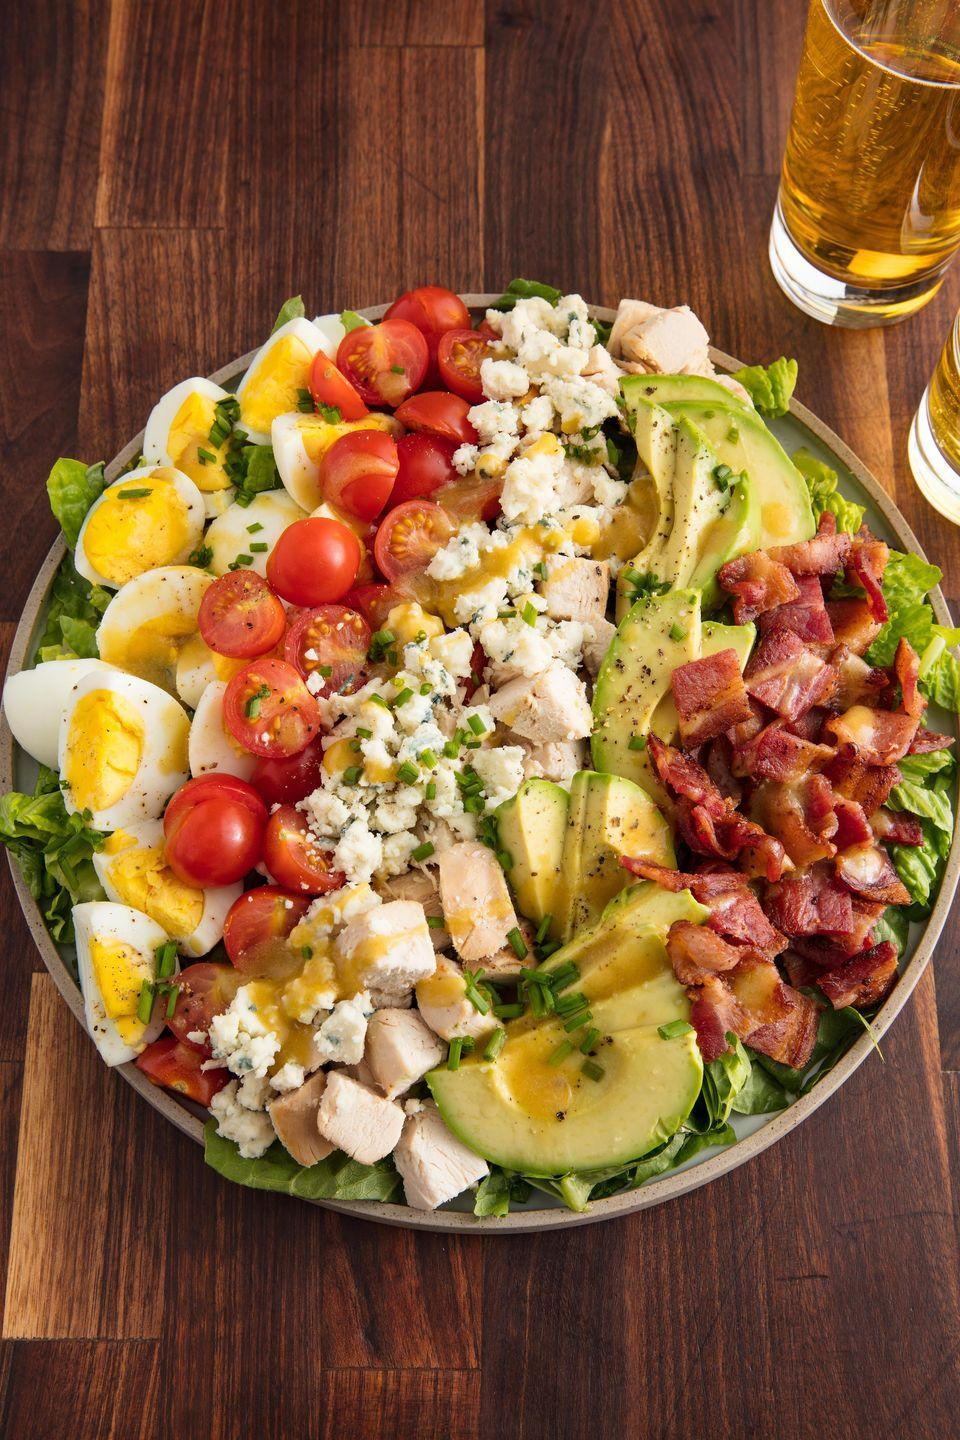 """<p>One salad to rule them all.</p><p>Get the recipe from <a href=""""https://www.delish.com/cooking/recipe-ideas/recipes/a58703/best-cobb-salad-recipe/"""" rel=""""nofollow noopener"""" target=""""_blank"""" data-ylk=""""slk:Delish"""" class=""""link rapid-noclick-resp"""">Delish</a>.</p><p><a class=""""link rapid-noclick-resp"""" href=""""https://www.amazon.com/Wusthof-Classic-8-Inch-Chefs-Knife/dp/B00009ZK08/?tag=syn-yahoo-20&ascsubtag=%5Bartid%7C1782.g.4110%5Bsrc%7Cyahoo-us"""" rel=""""nofollow noopener"""" target=""""_blank"""" data-ylk=""""slk:BUY NOW"""">BUY NOW</a> Wusthof Chef's Knife, $95</p>"""